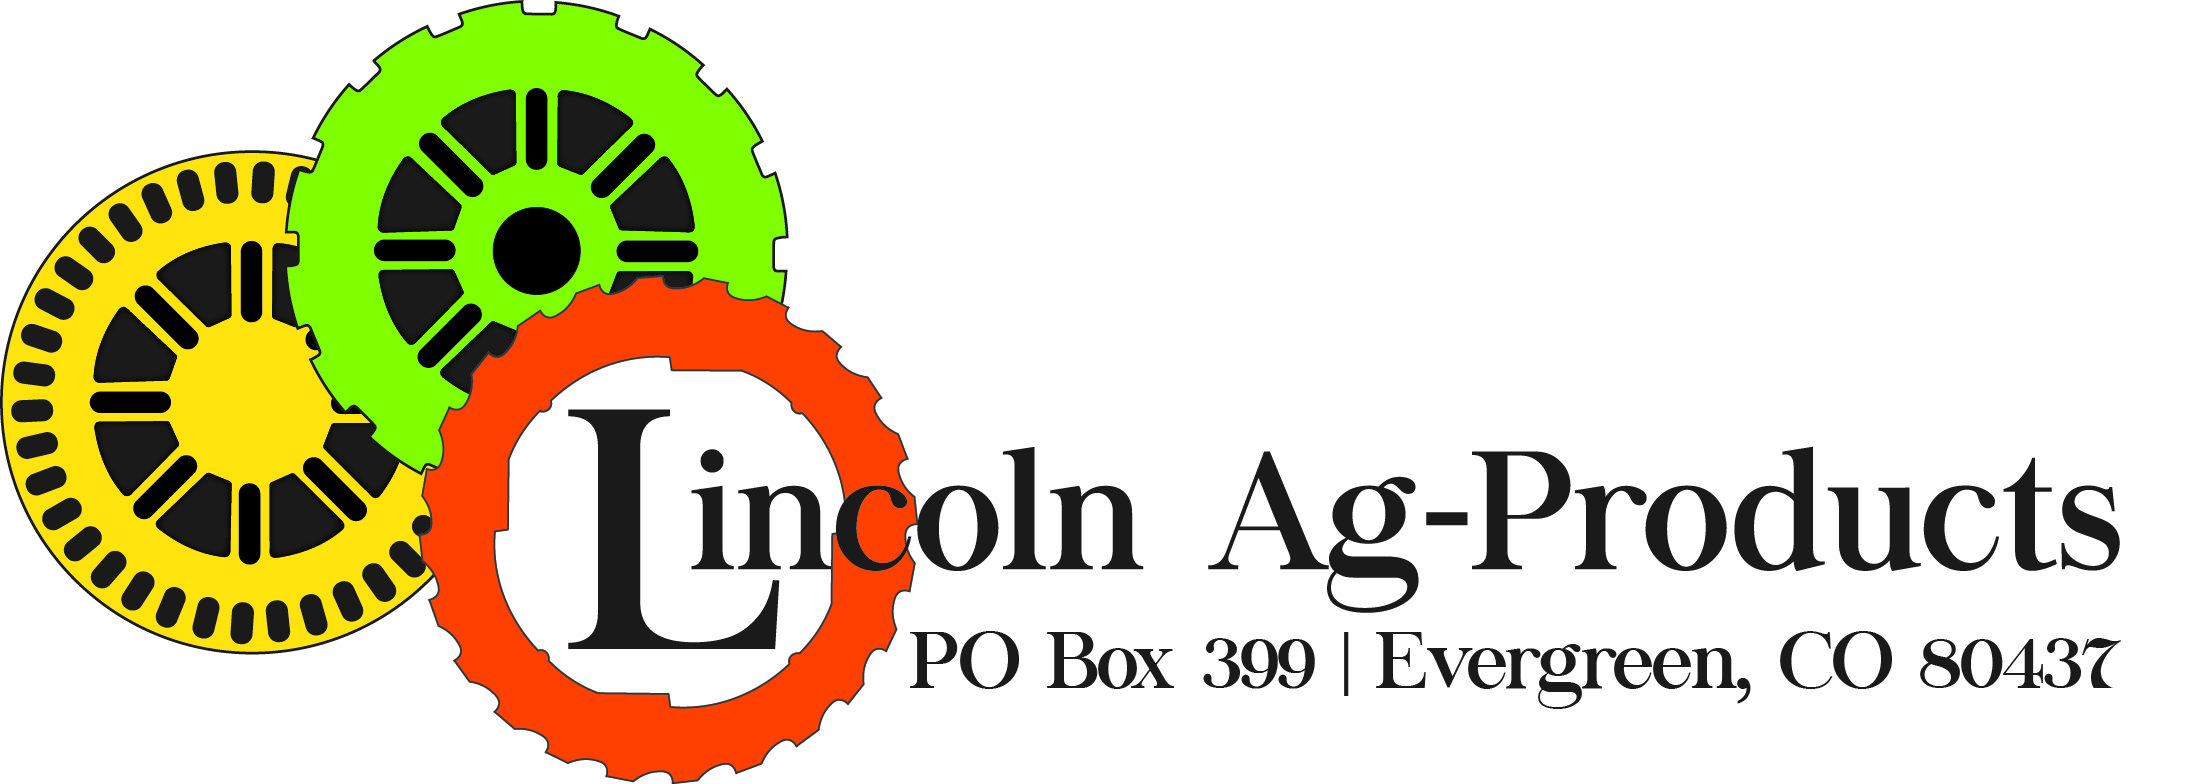 Lincoln Ag Products Logo